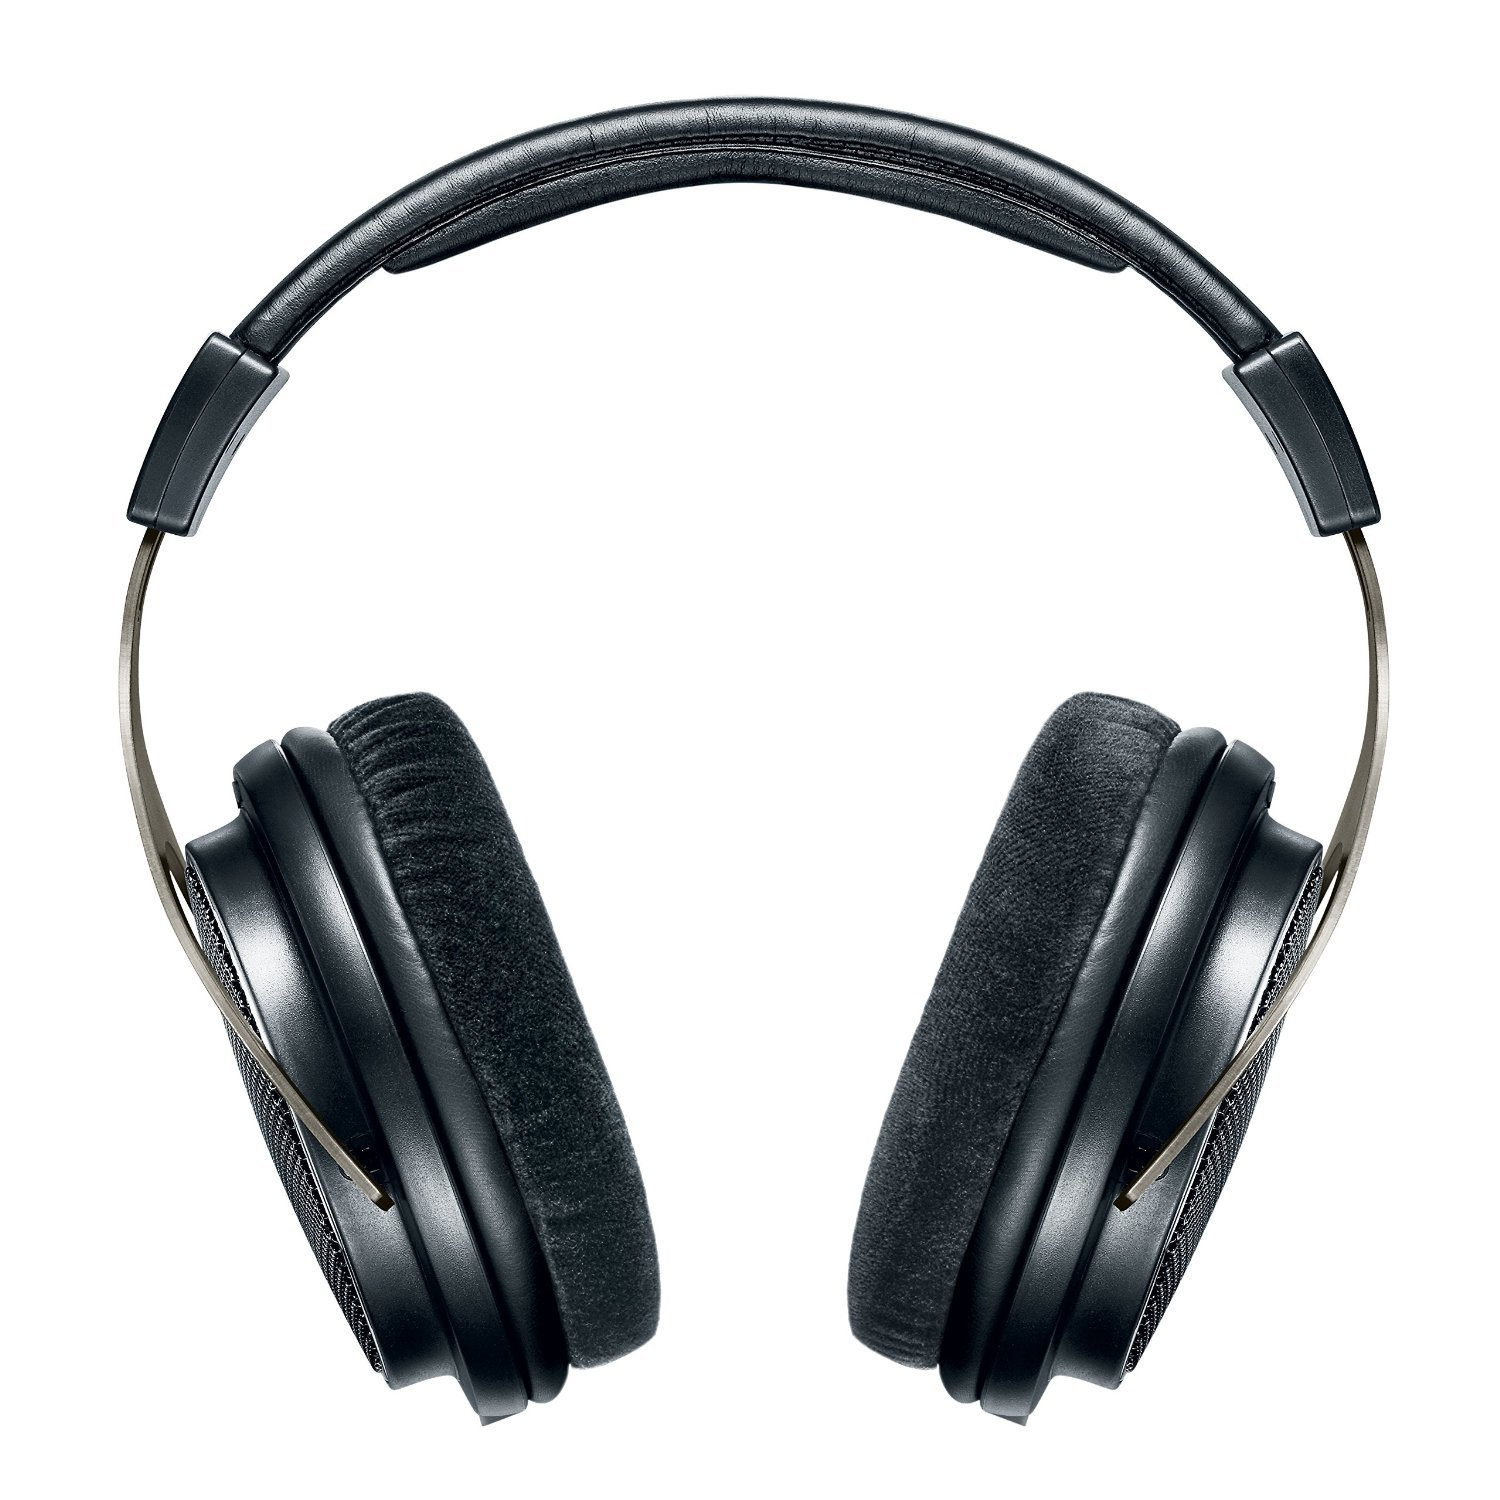 Zip Up Headphones Amazoncom Shure Srh1840 Professional Open Back Headphones Black